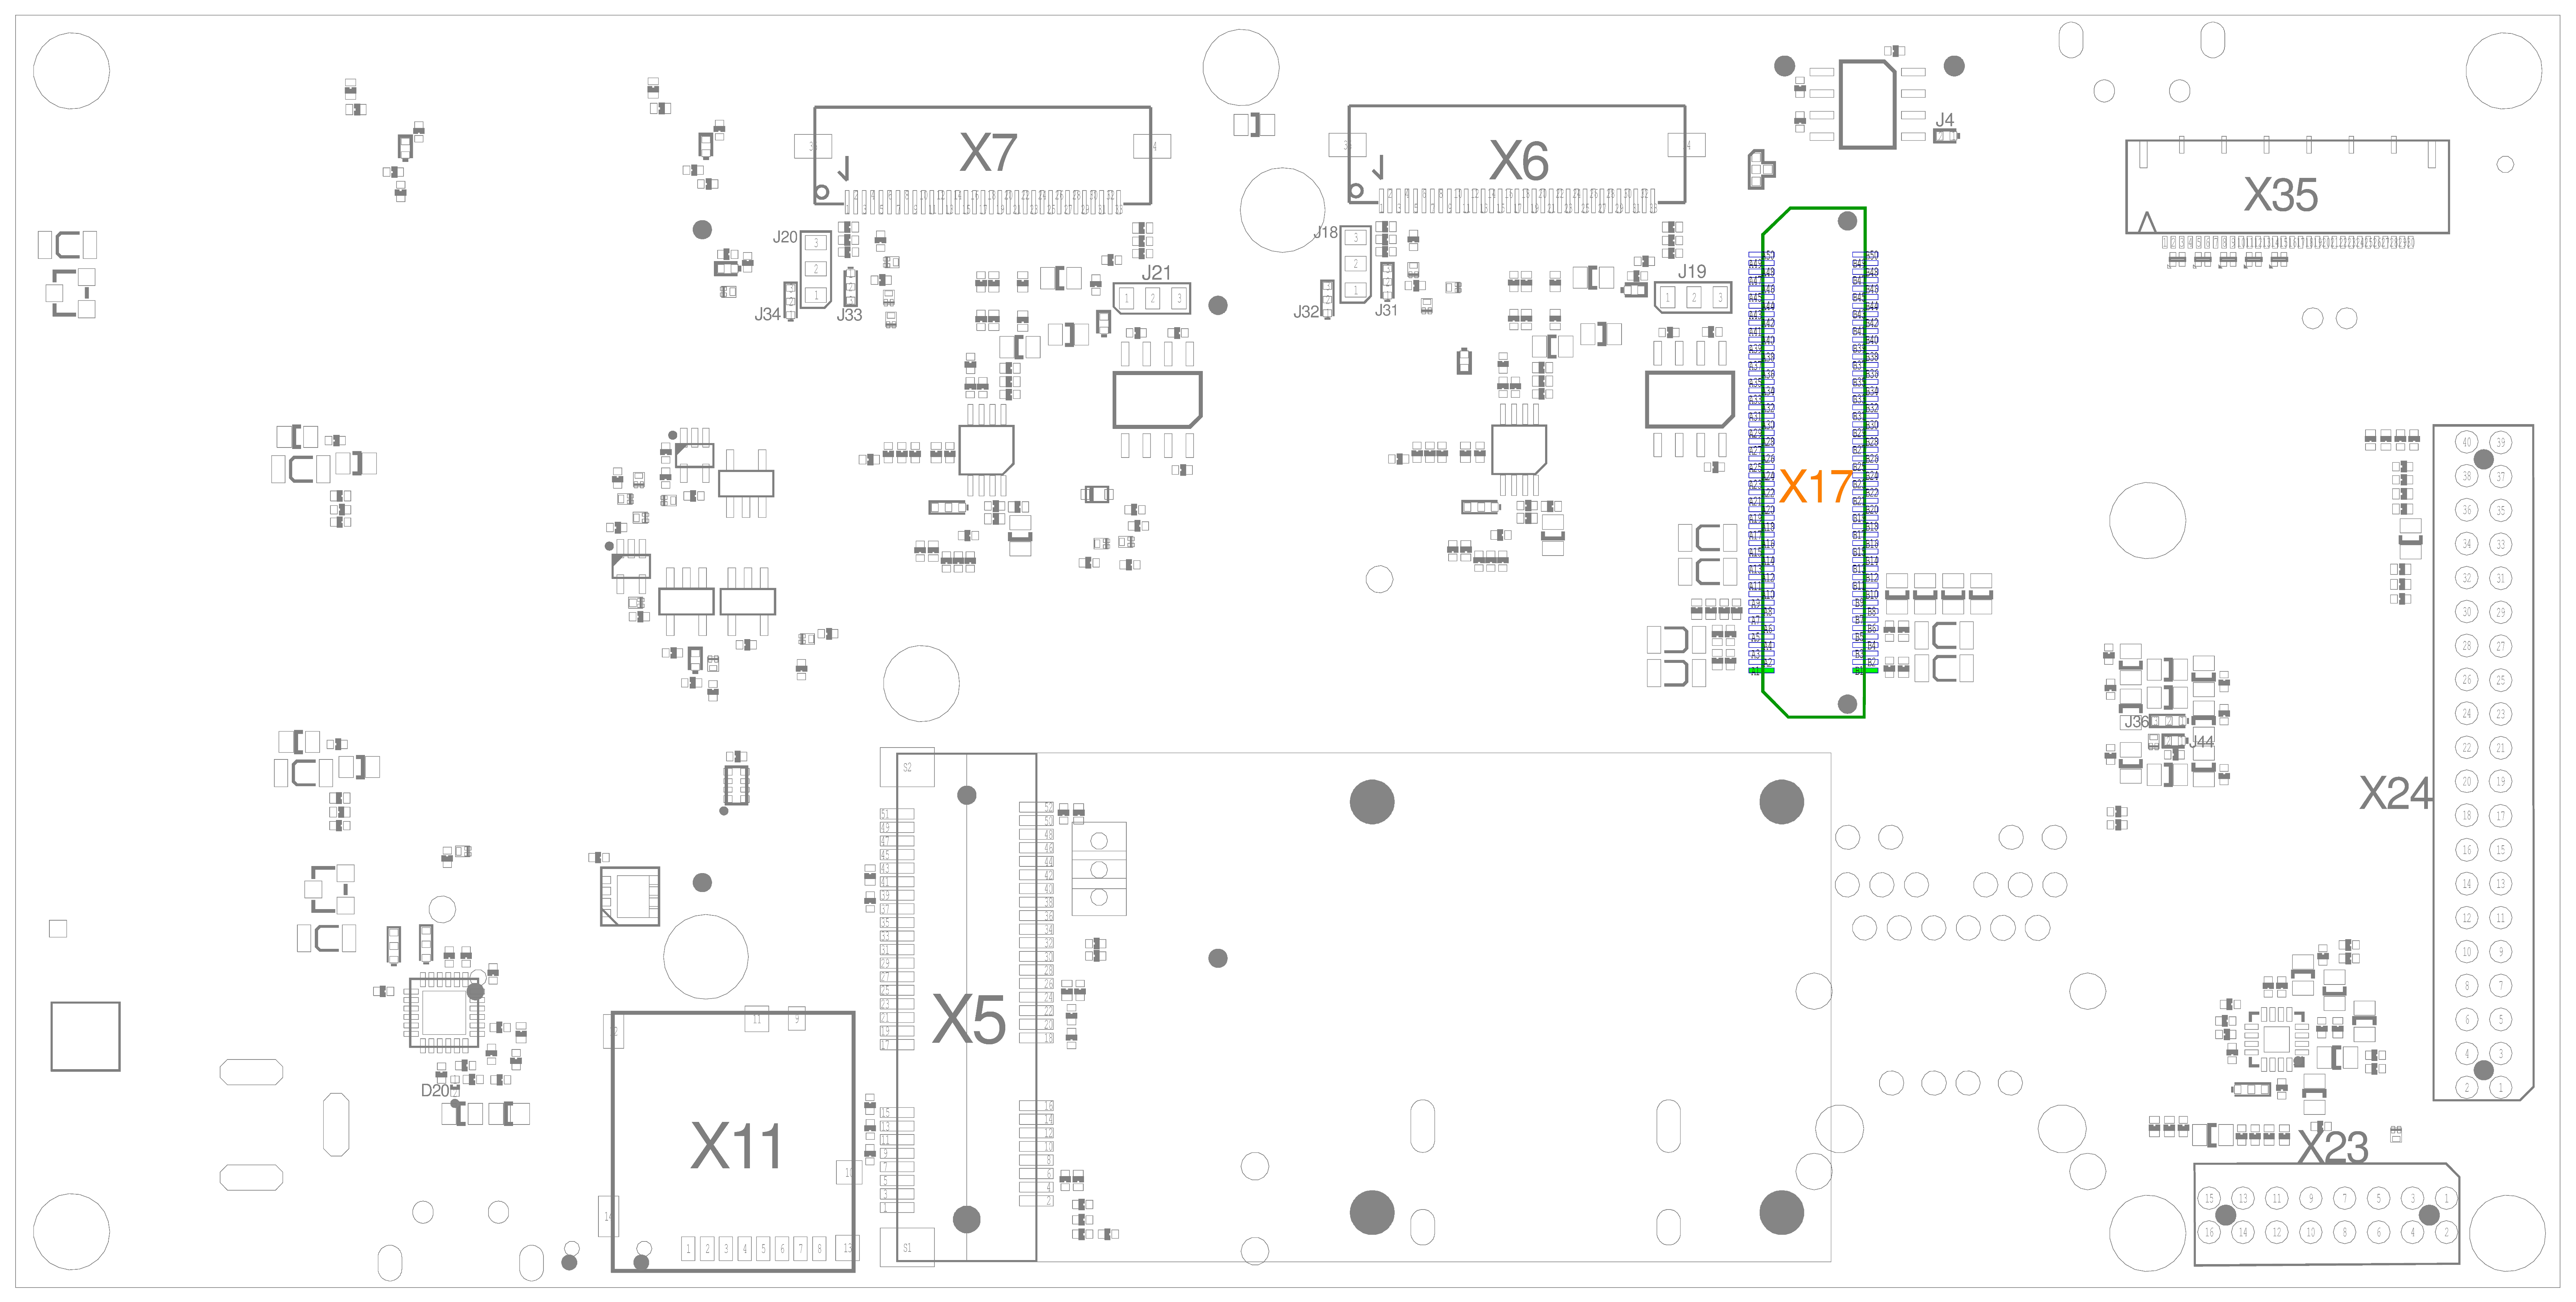 Expansion Connector (X17)